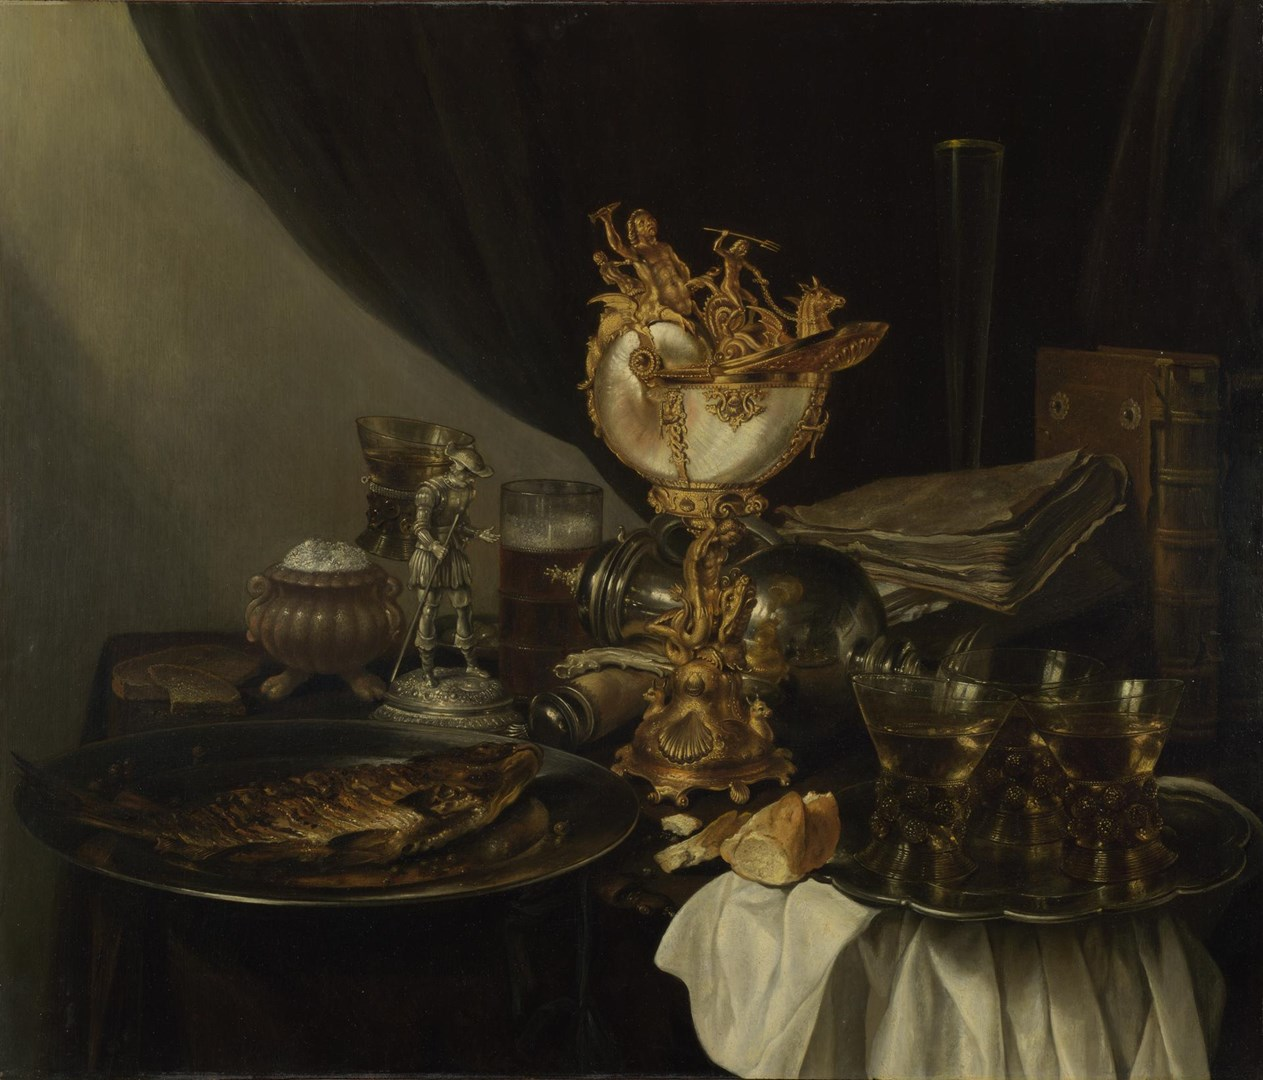 Still Life with a Nautilus Cup by Probably by Gerrit Willemsz. Heda